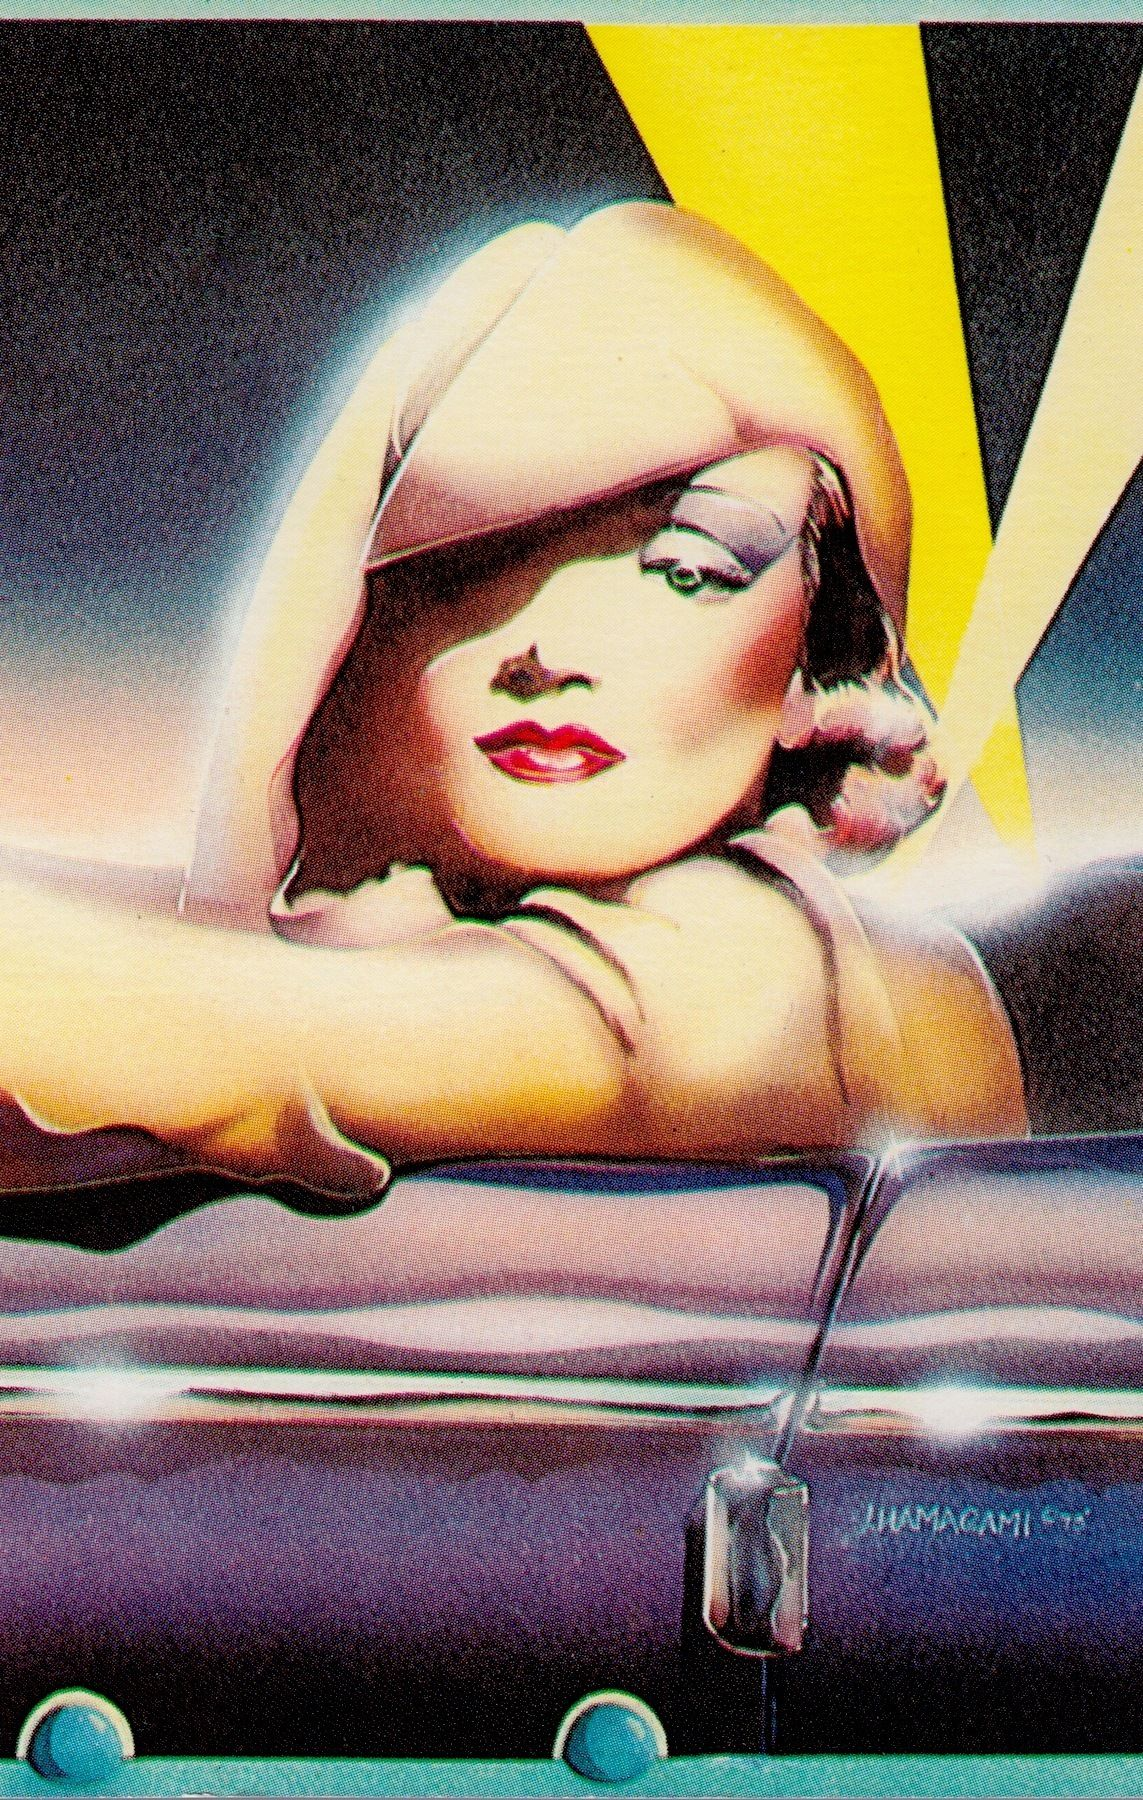 Marlene dietrich in desire 1936 illustration by john hamagami 1979 paper moon marlene dietrich in desire 1936 illustration by john hamagami 1979 greeting card kristyandbryce Image collections